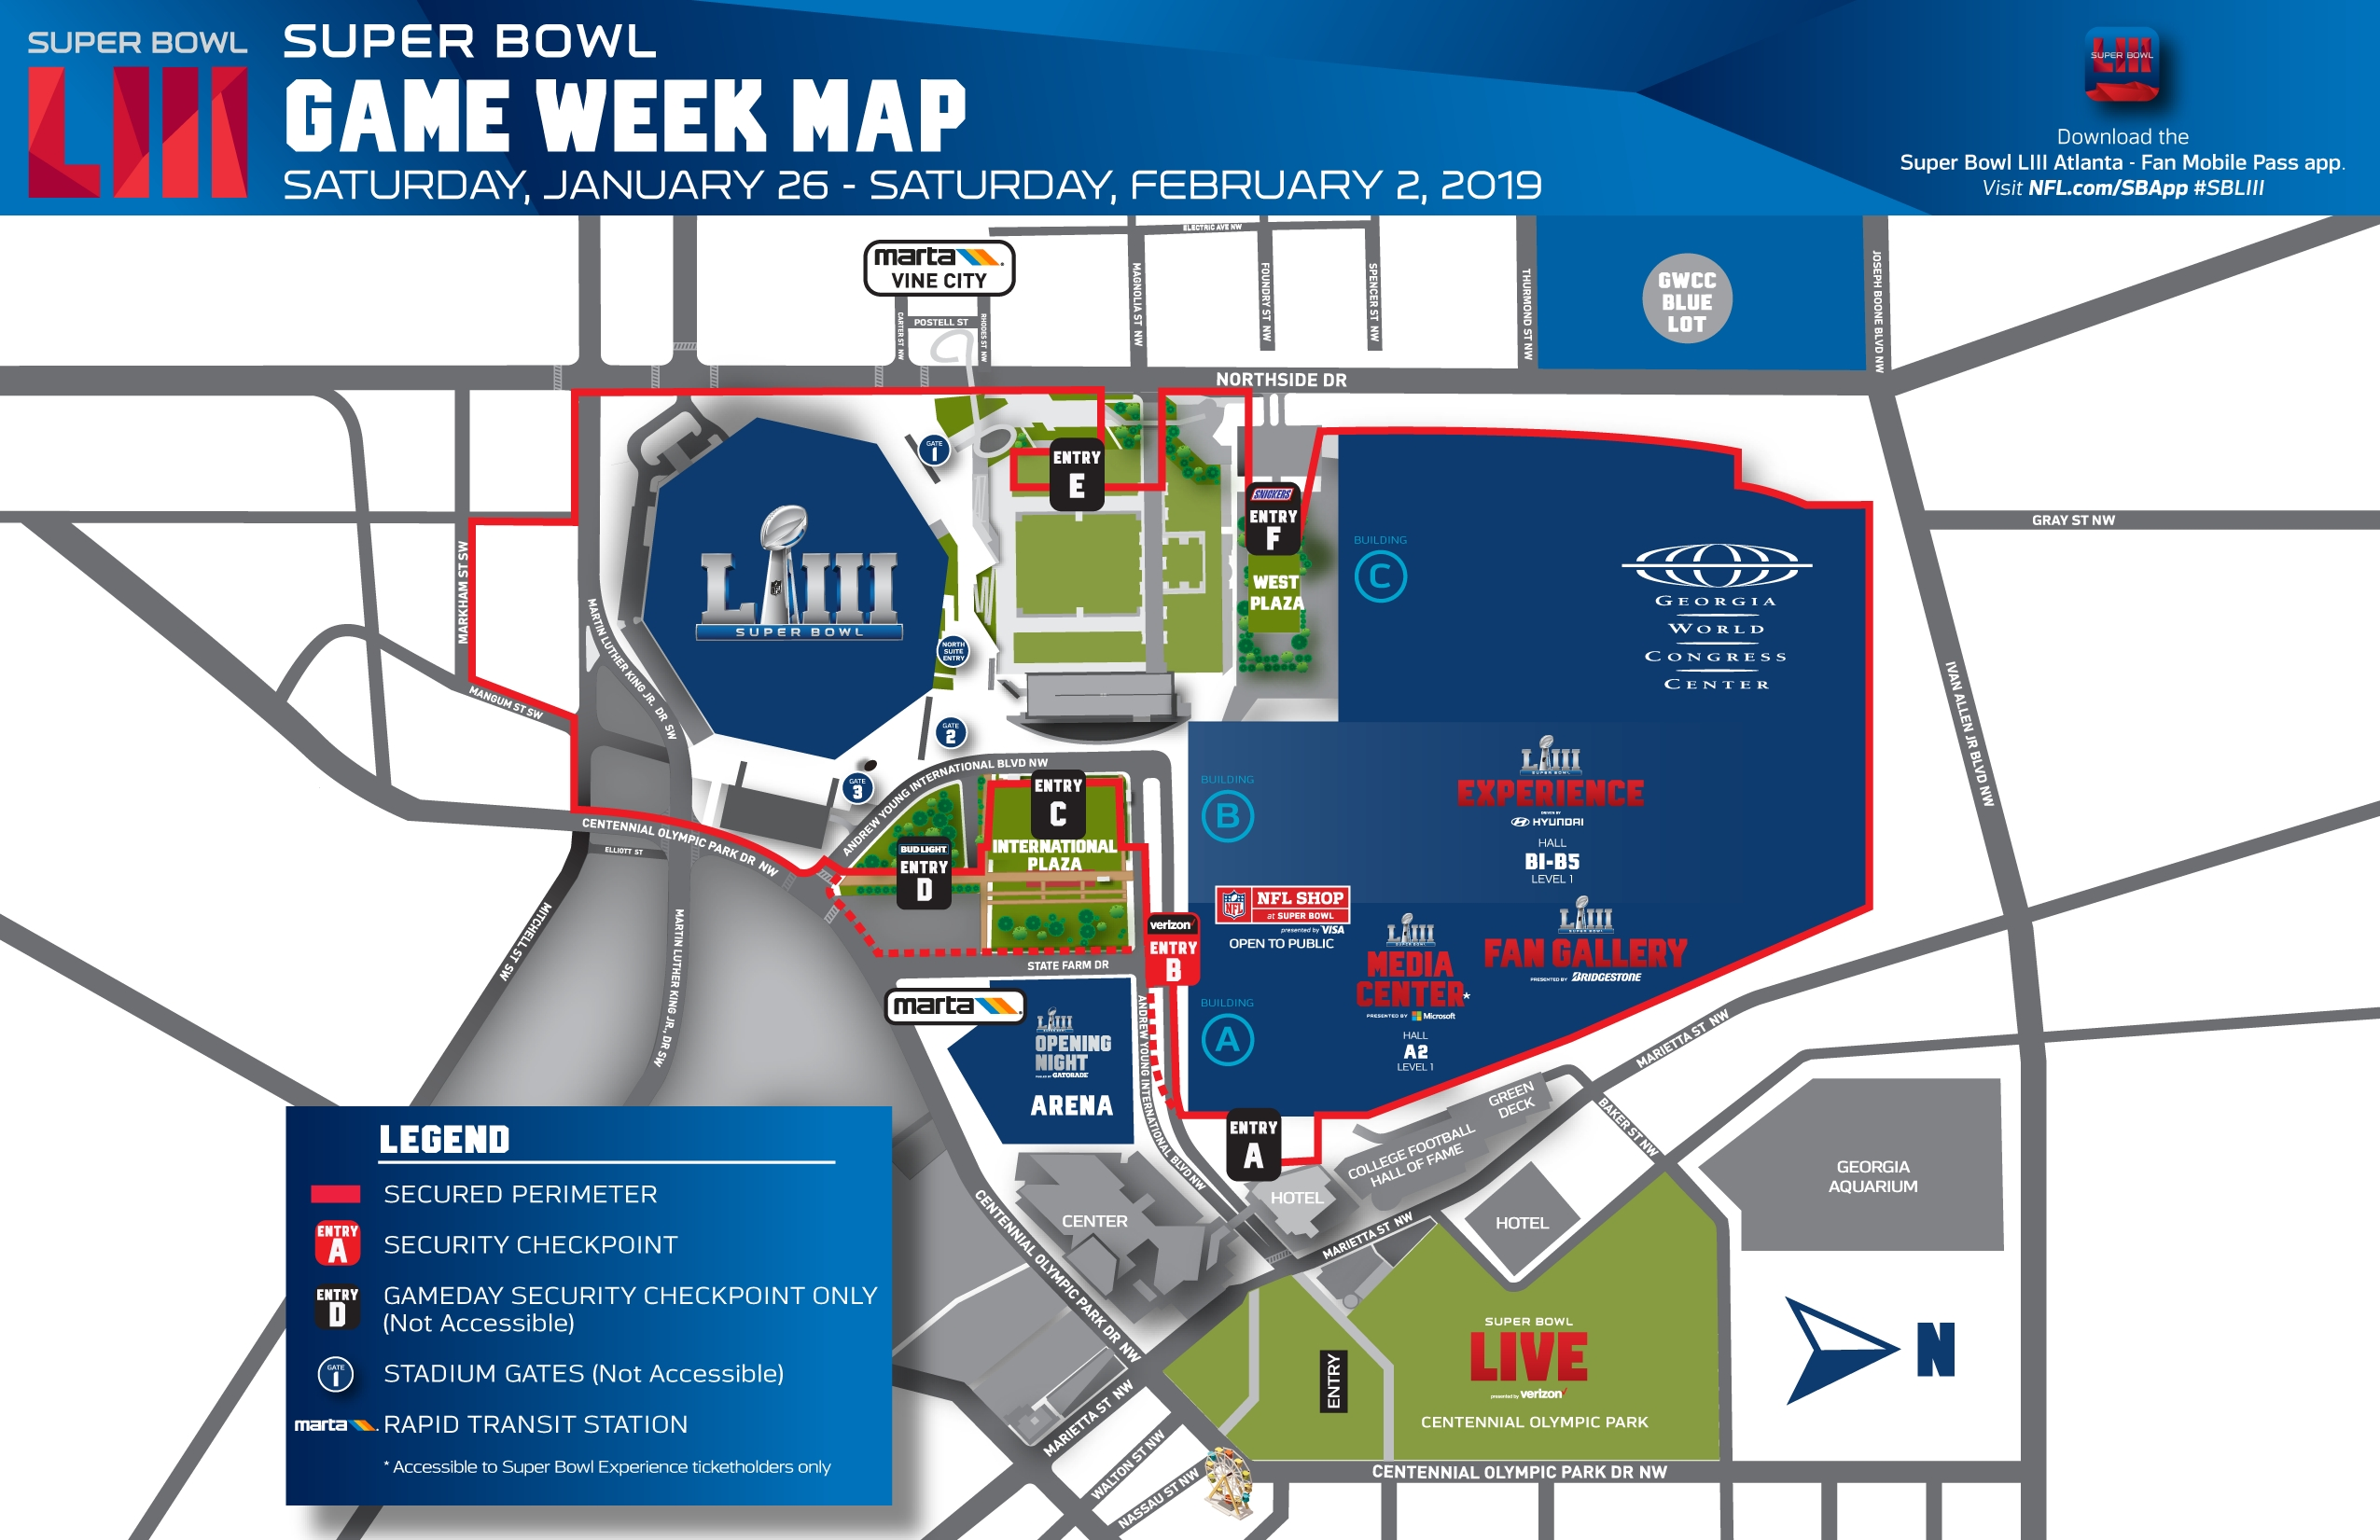 Super Bowl Experience | Nfl | Nfl with regard to Super Bowl 2019 Event Map